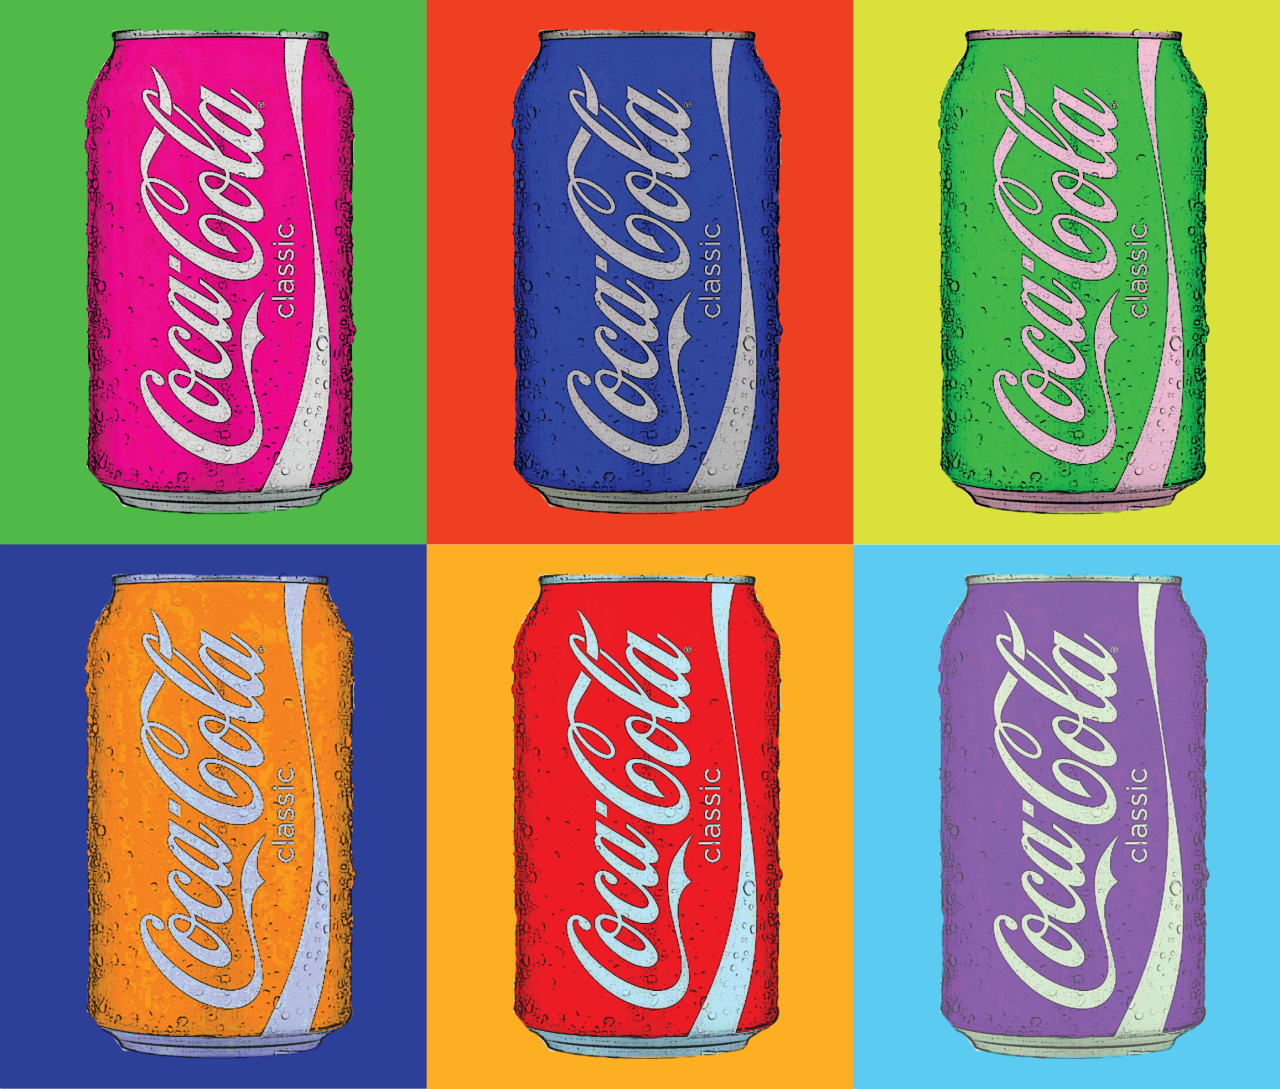 Andy warhol pop art coca cola car interior design